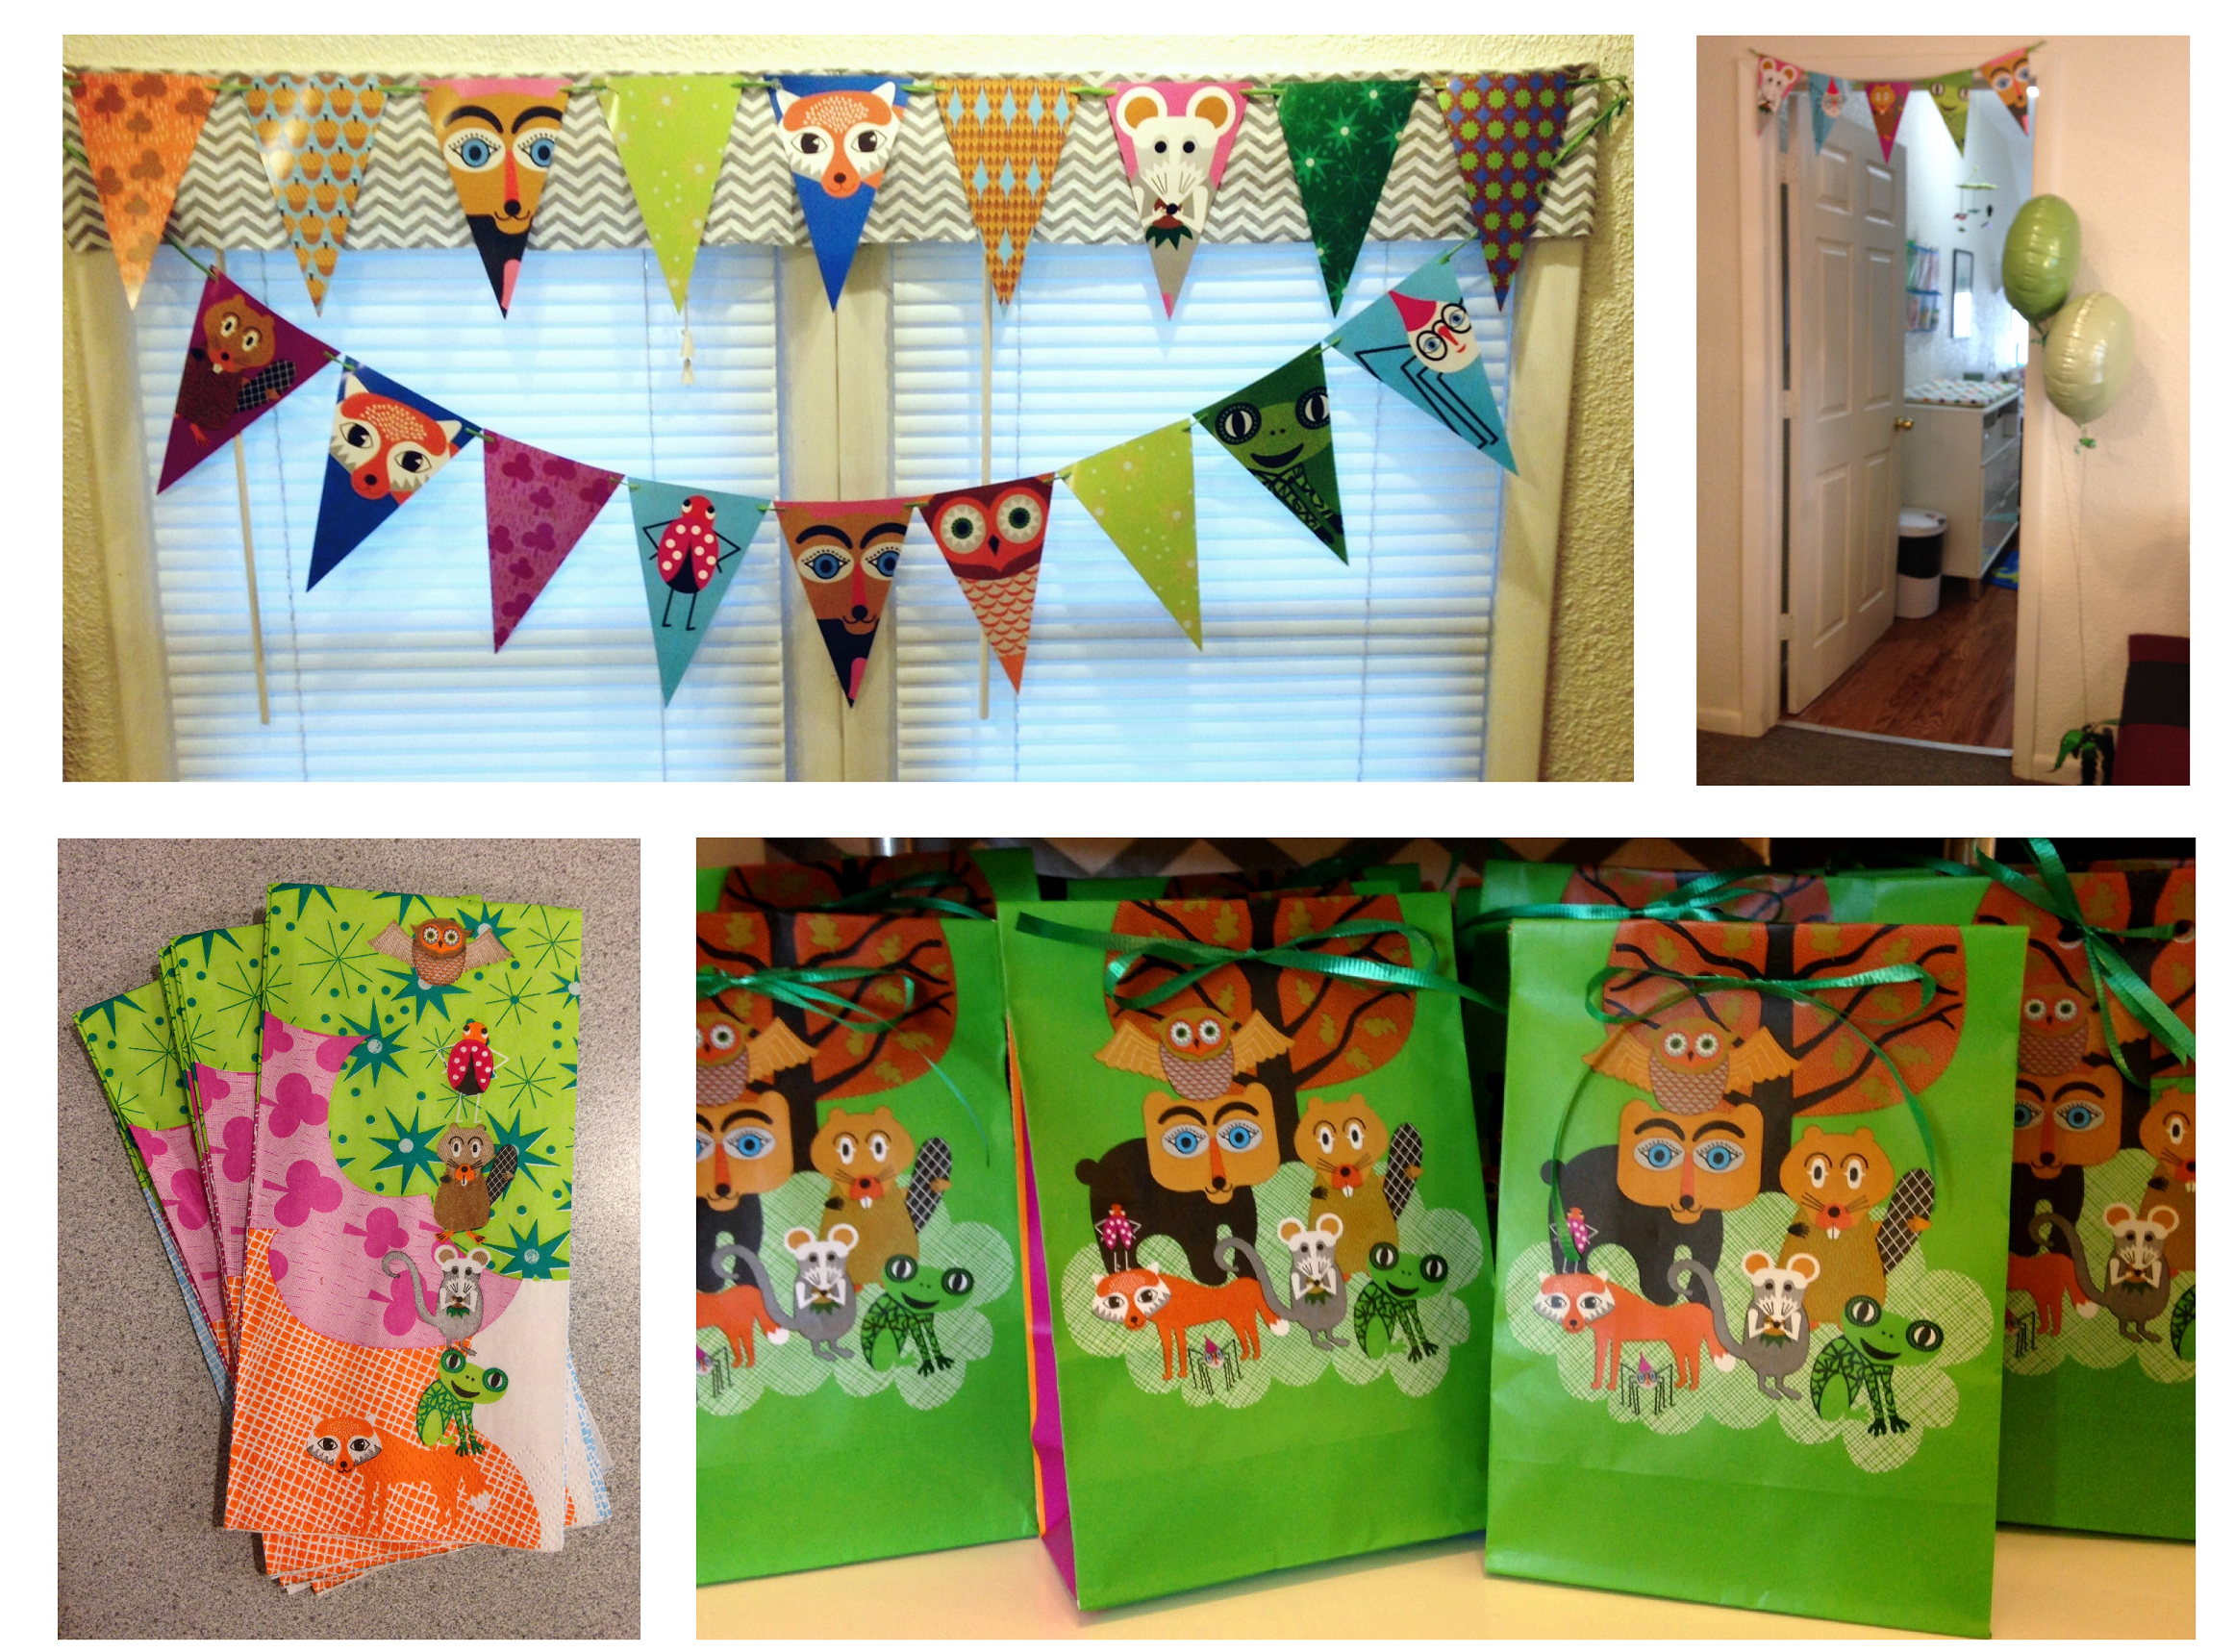 ikea overlagsen party decorations paper napkins and treat bags perfect for our woodland